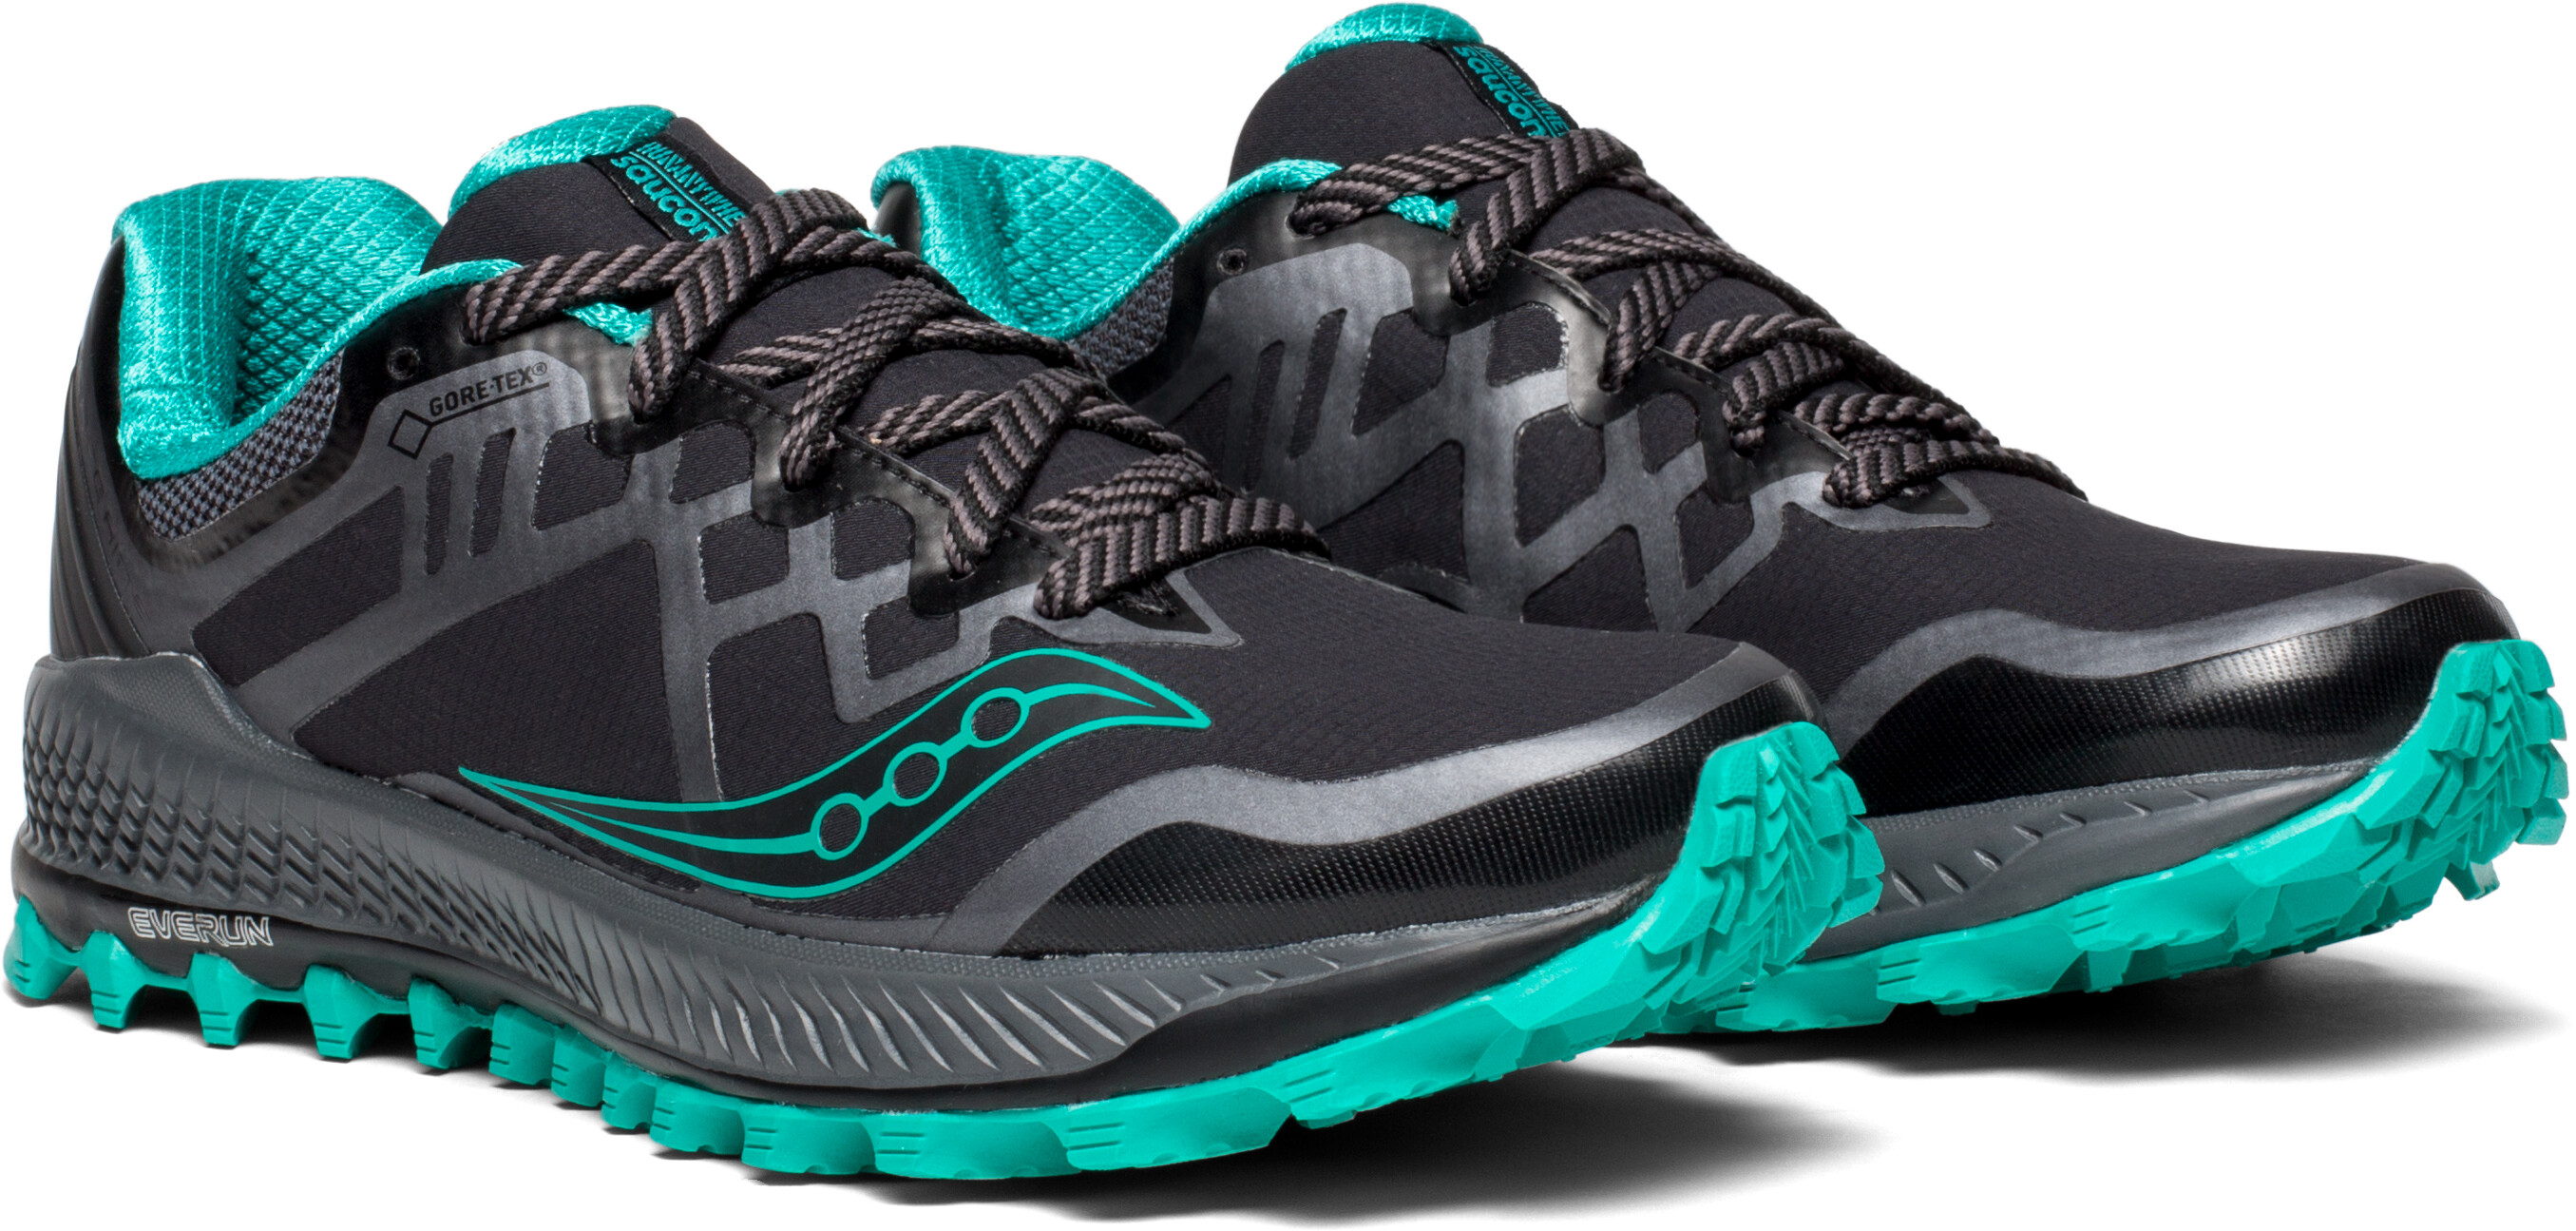 saucony Peregrine 8 GTX Running Shoes Women black turquoise at ... 4a4ce0682cf